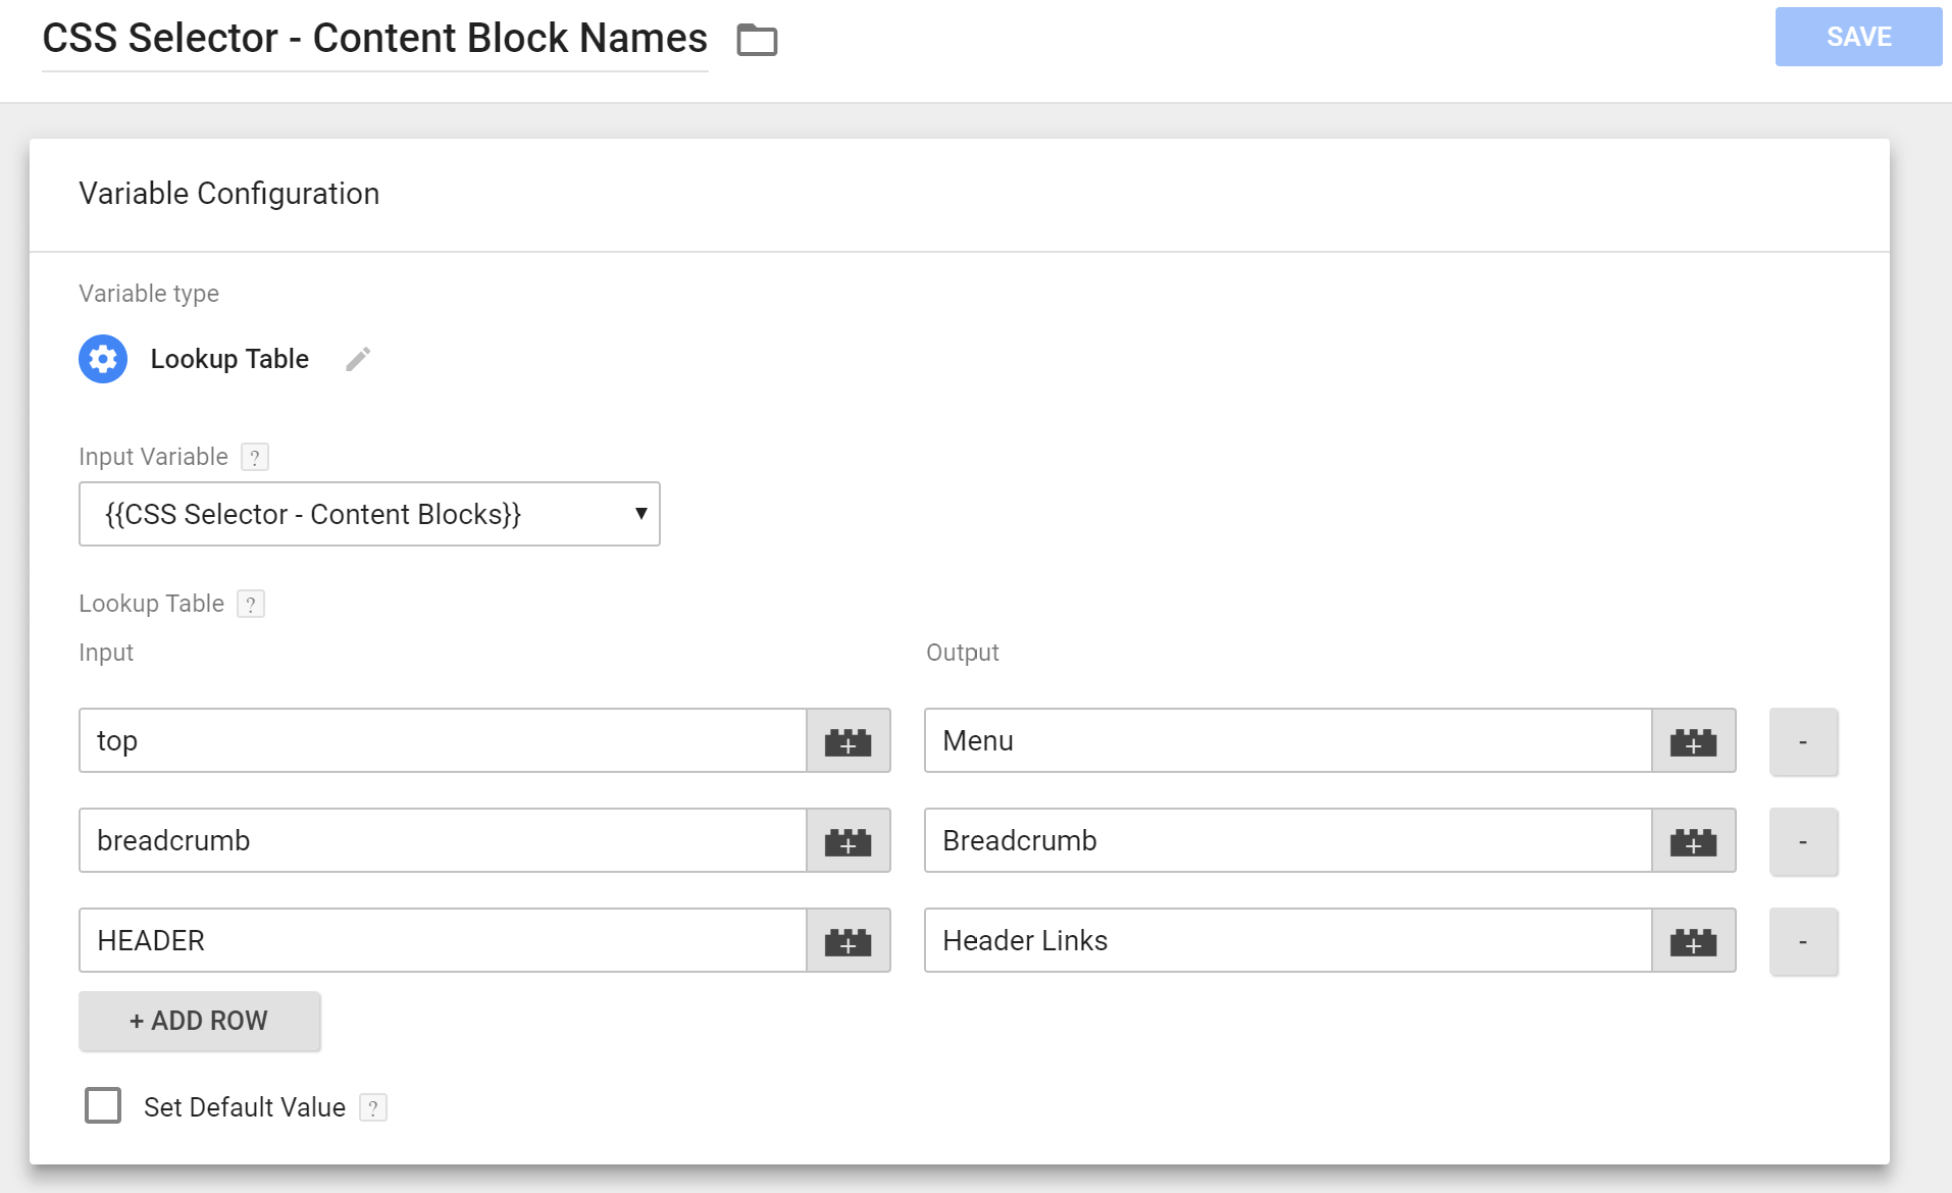 GTM Variable: CSS Selector - Content Block Names